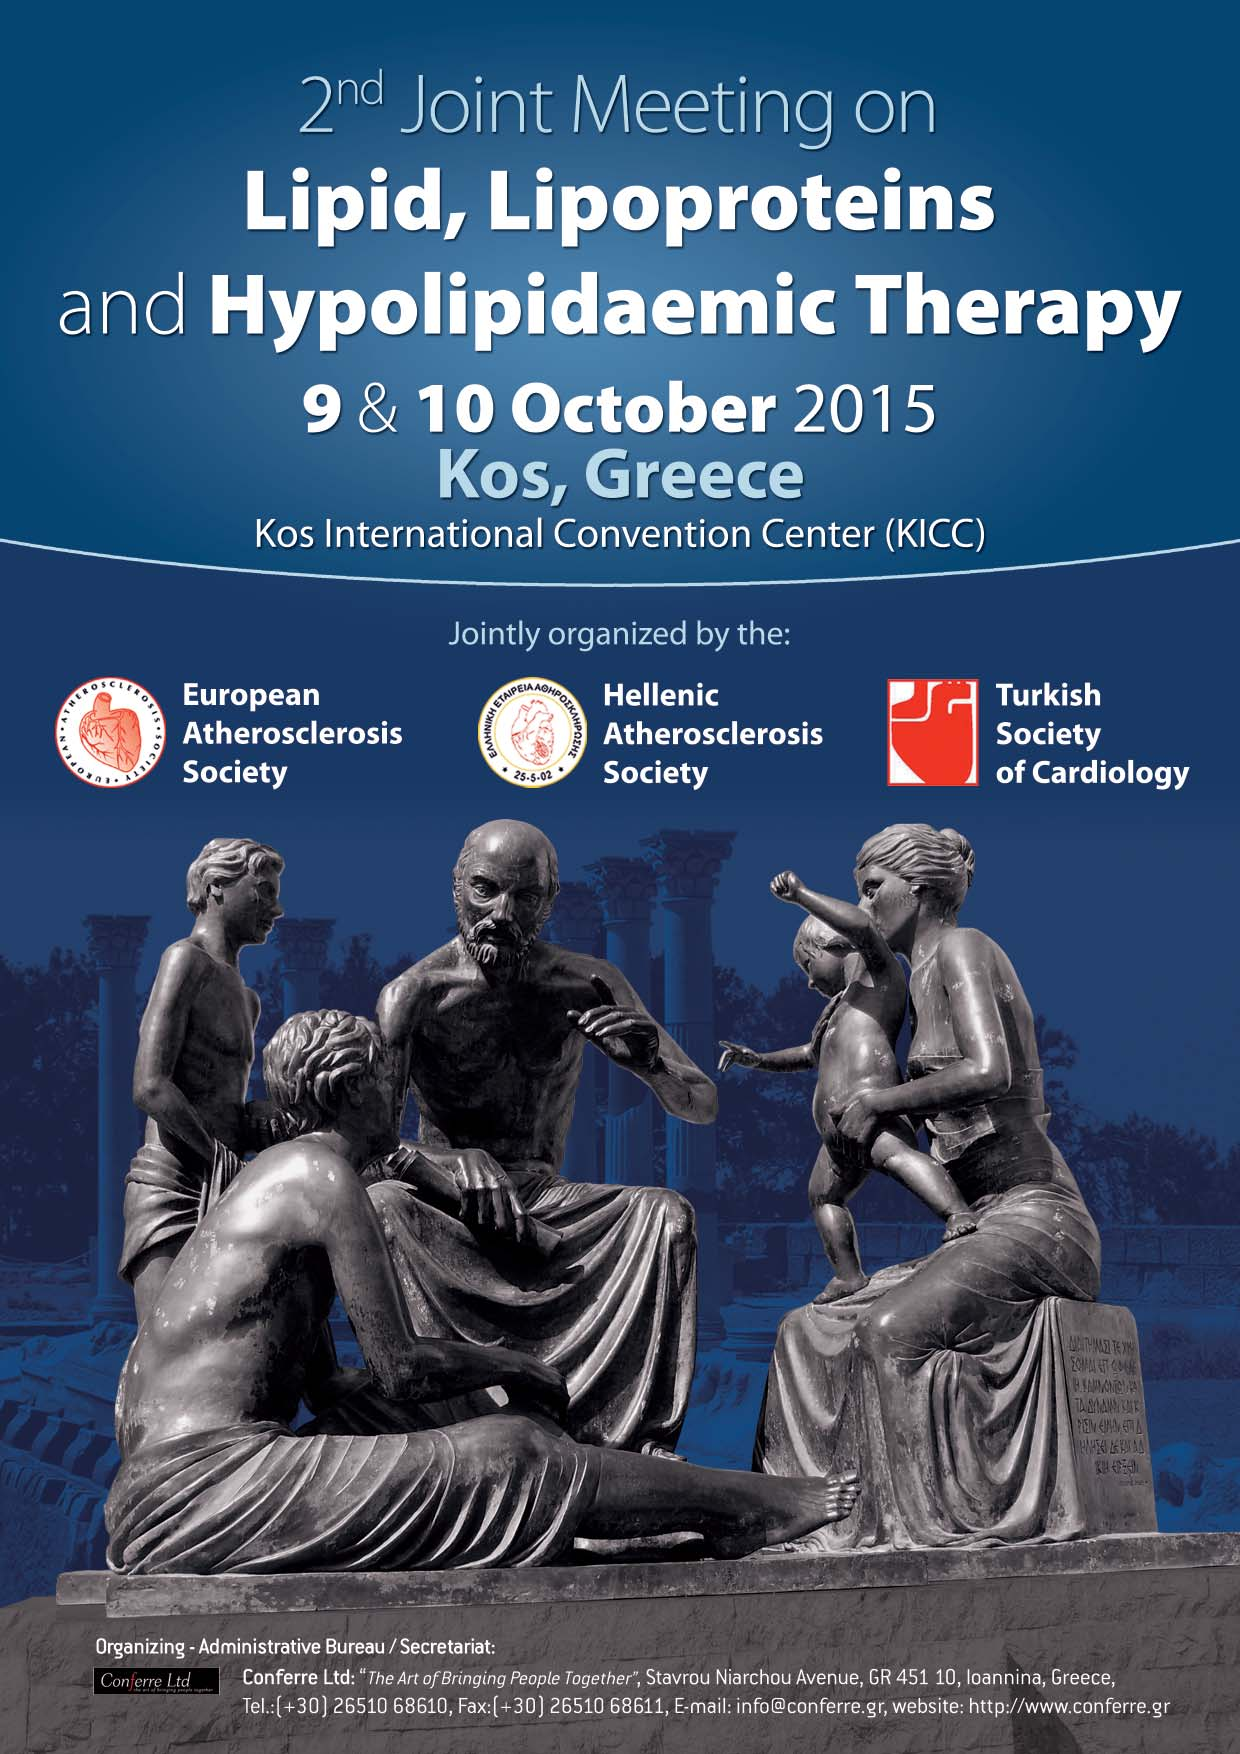 2nd Joint Meeting on Lipid, Lipoproteins and Hypolipidaemic Therapy, 9 & 10/10/2015 - Kos island